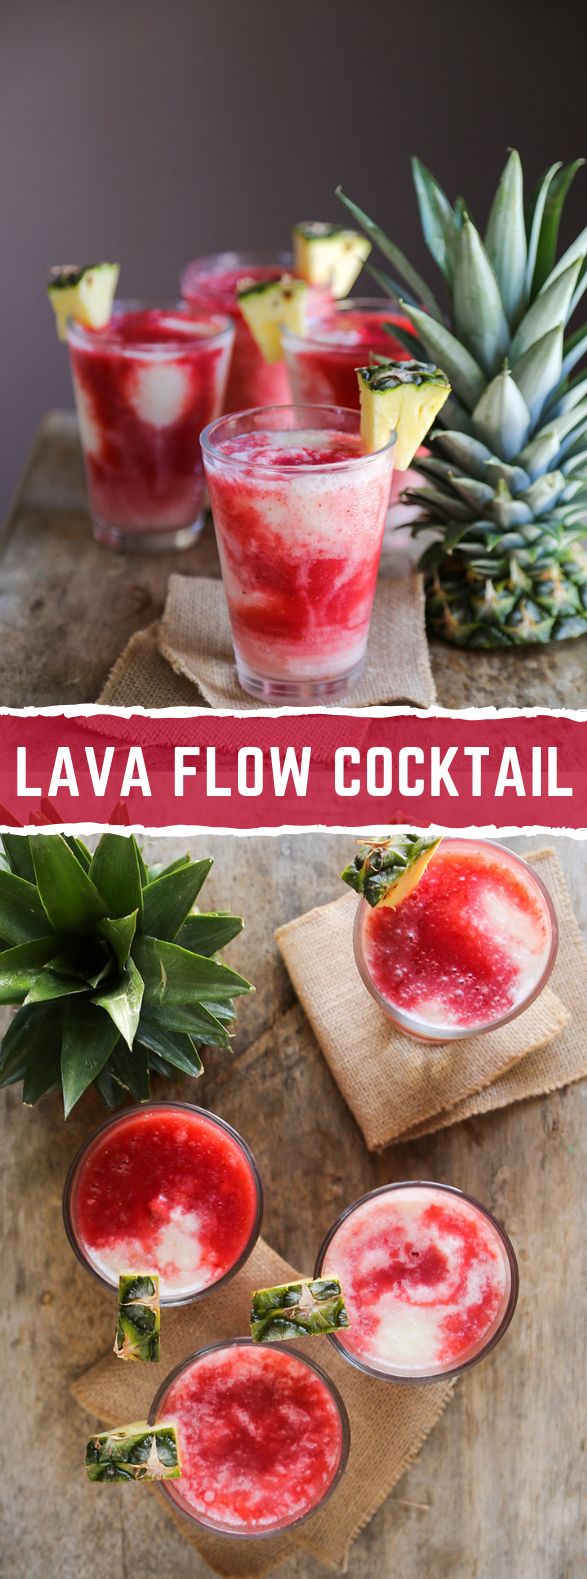 Lava Flow Cocktail #drink #summer